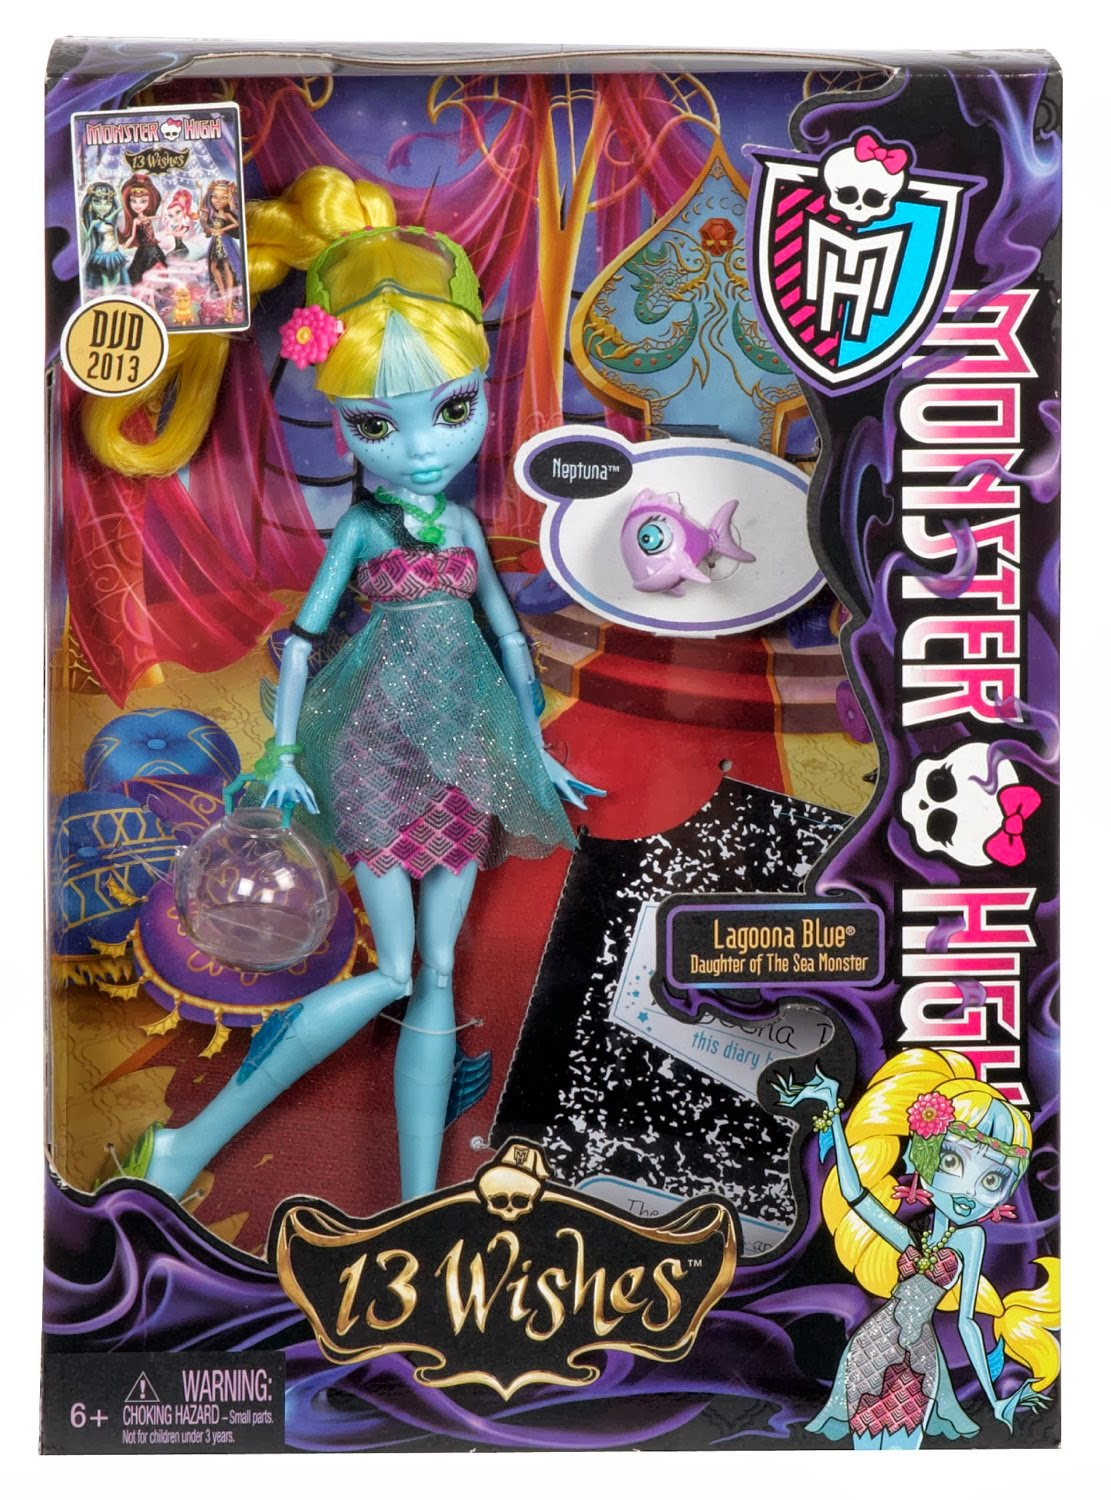 DISPONIBLE AMAZON.ES: Monster High - Muñeca Lagoona Blue 13 Wishes